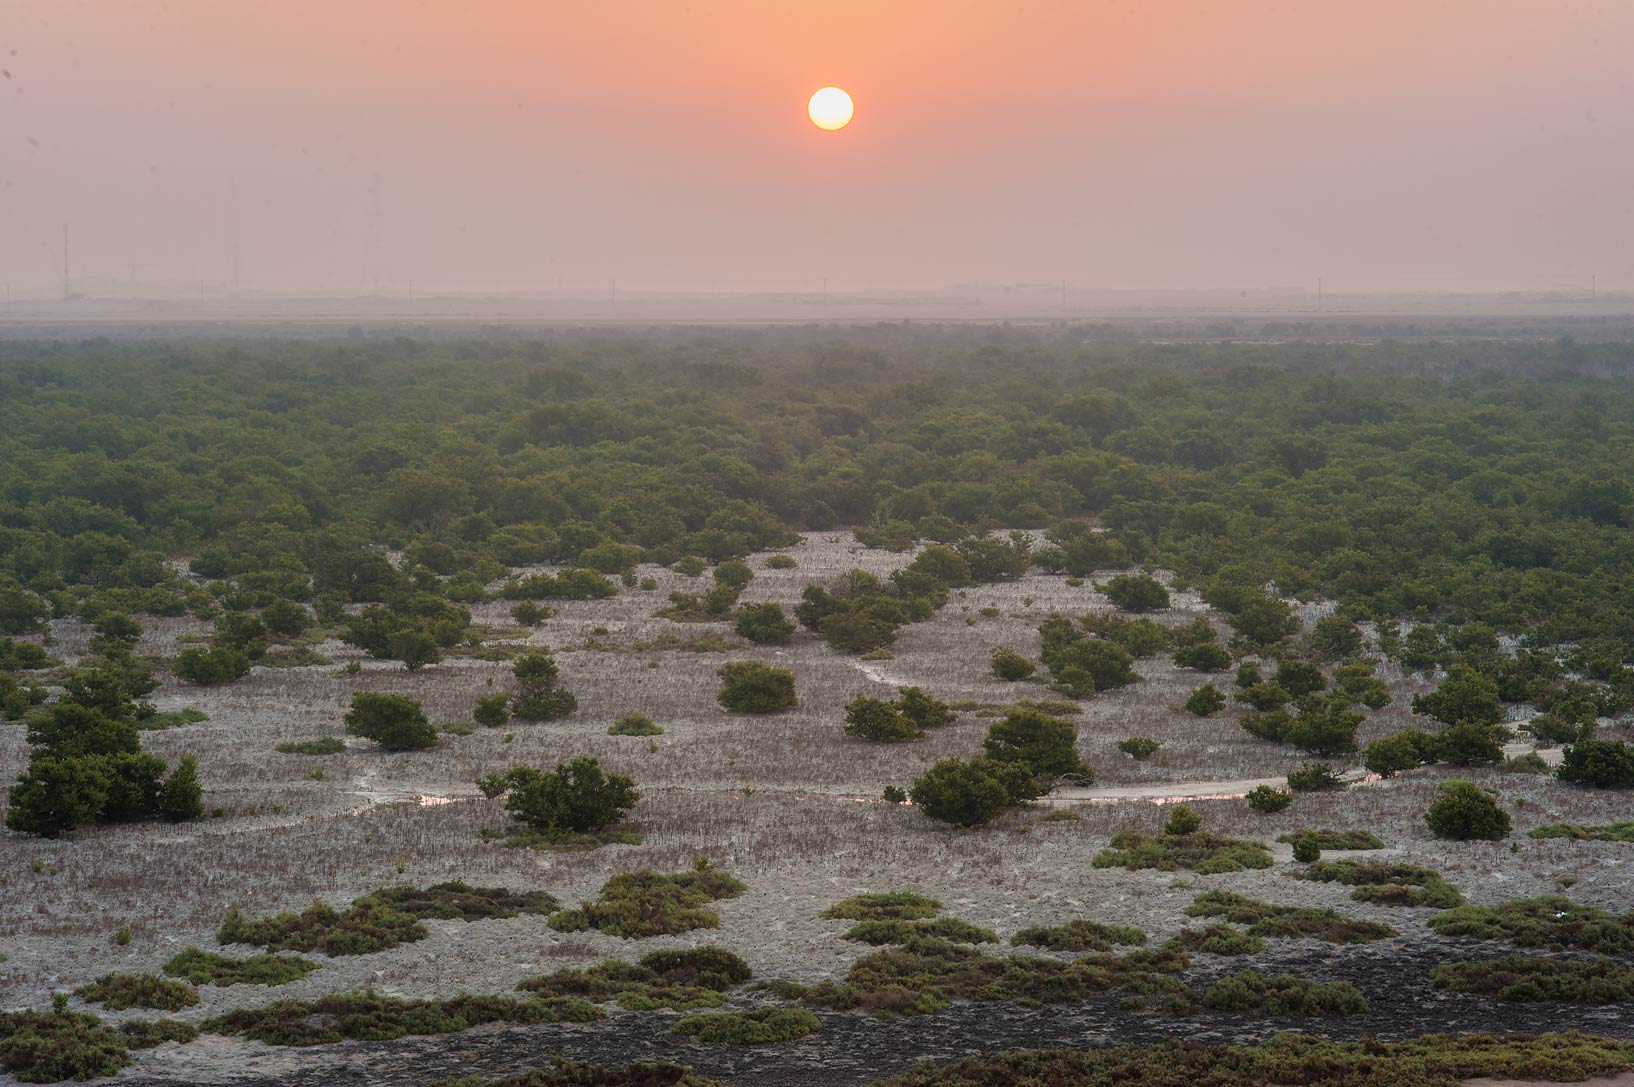 Sunrise over mangrove forest, view to the east...Jazirat Bin Ghanim). Al Khor, Qatar